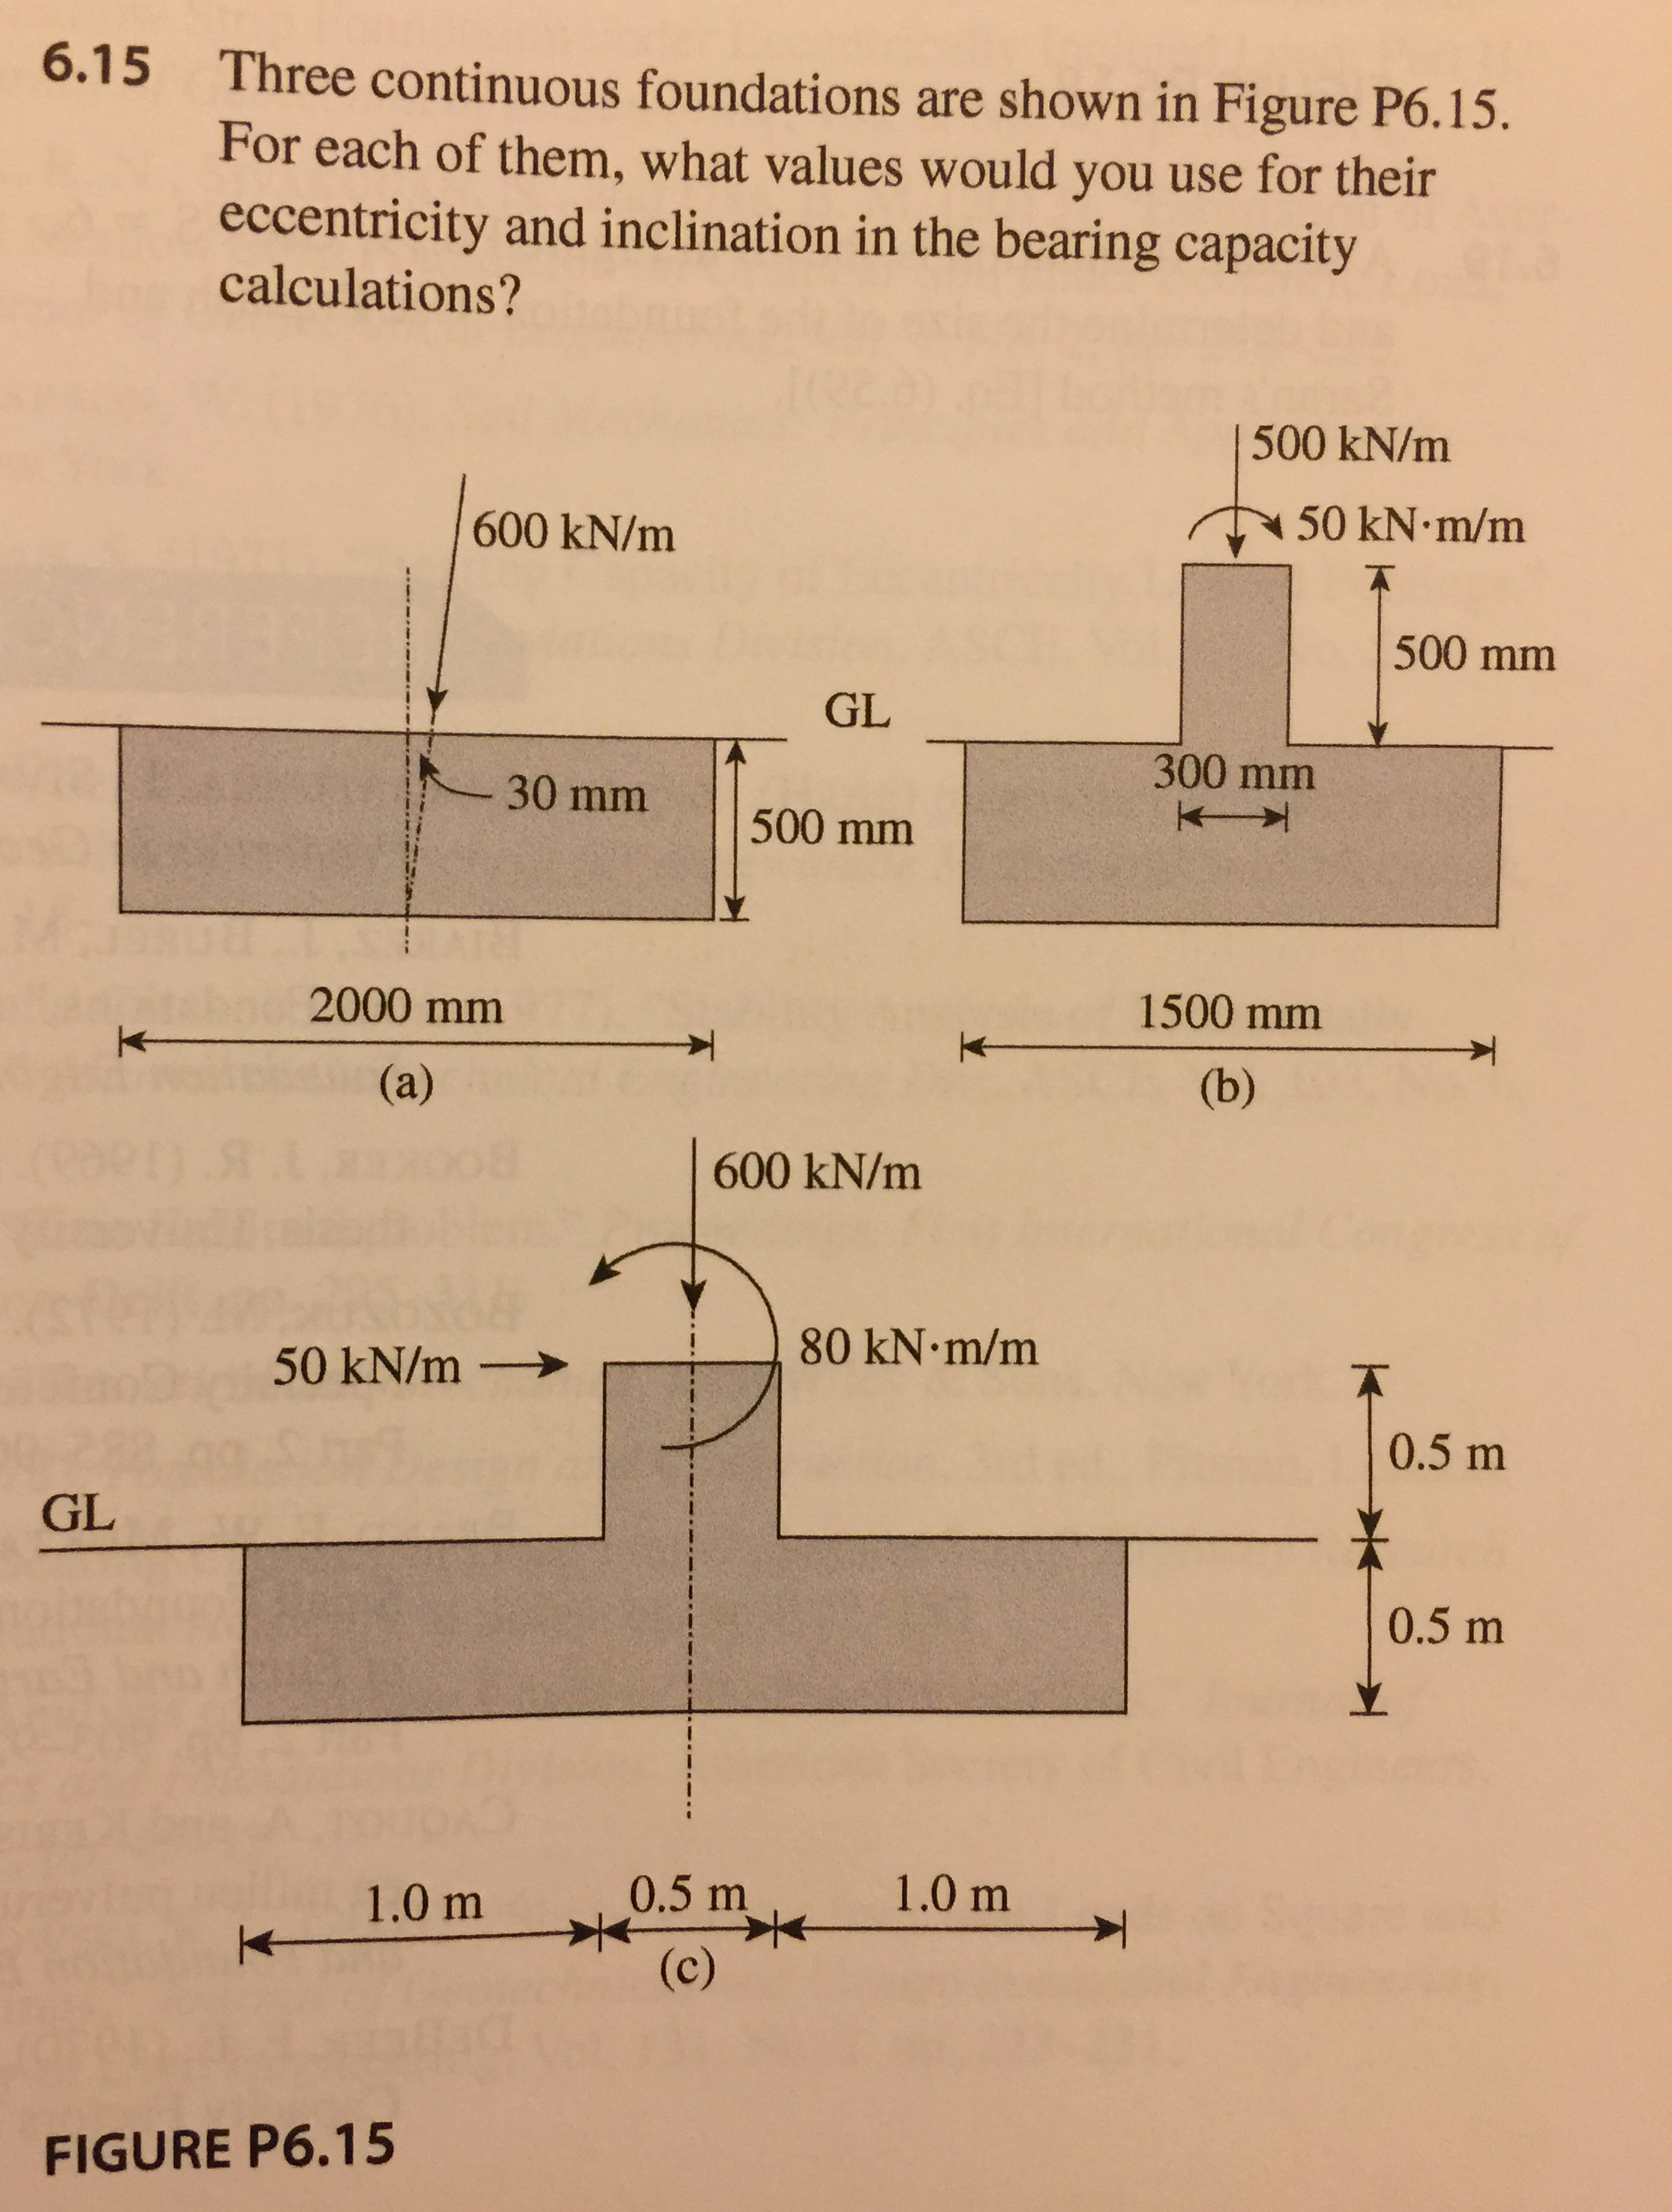 6.15 Three continuous foundations are shown in Figure P6.15. For each of them, what values would you use for their eccentricity and inclination in the bearing capacity calculations? 500 kN/m 50 kN·m/m 600 kN/m 500 mm GL 300 mm 30 mm 500 mnm 2000 mm 1500 mm 600 kN/m 80 kN m/m 50 kN/m → 0.5 m GL 0.5 m 1.0 m 0.5 m1.0 m FIGURE P6.15